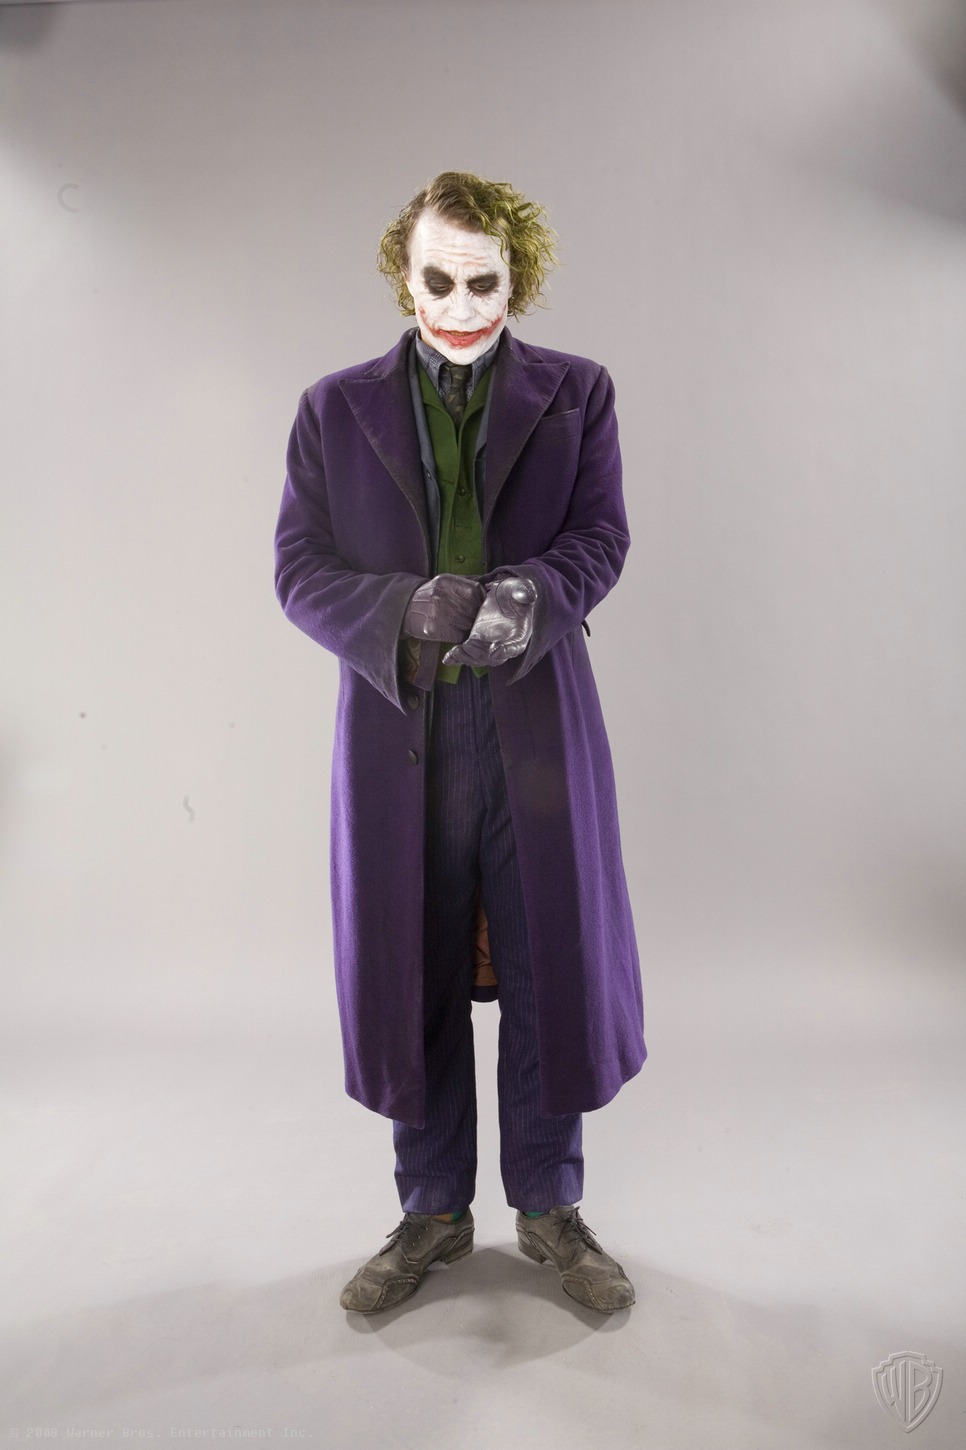 the joker - The Joker Photo (28836016) - Fanpop